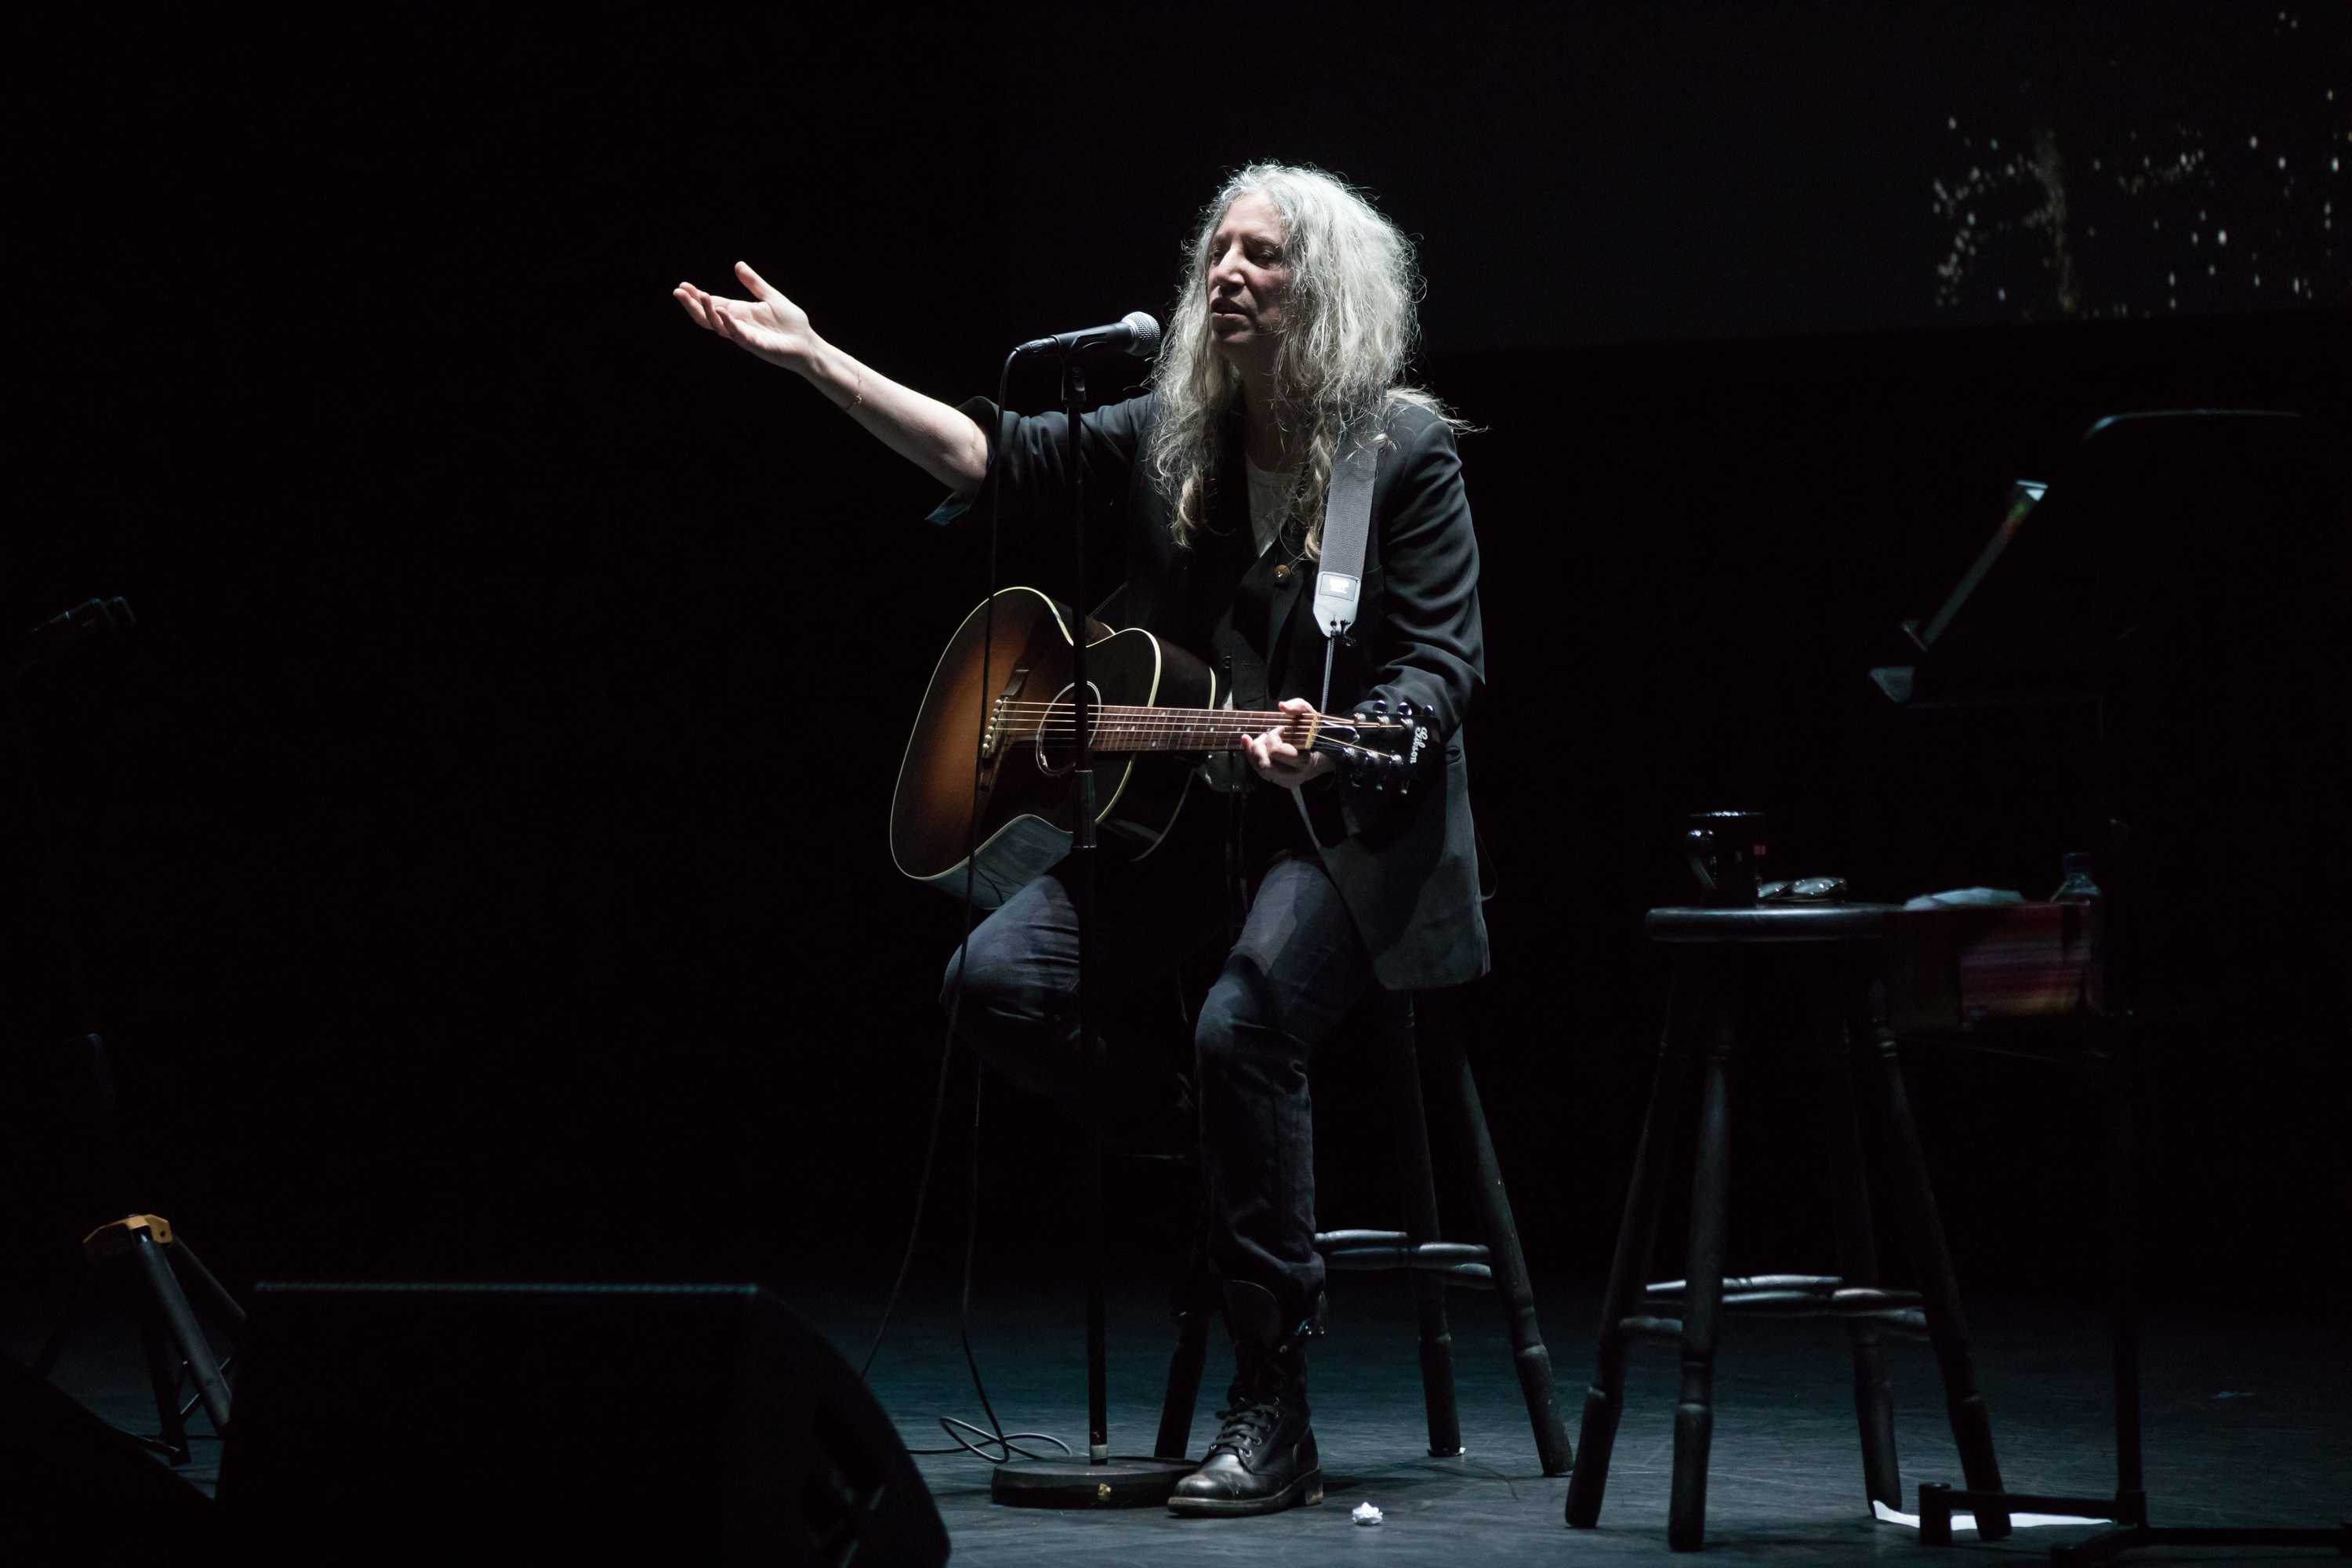 We watched Patti Smith say goodbye to Australia last night, and had a lot of feelings